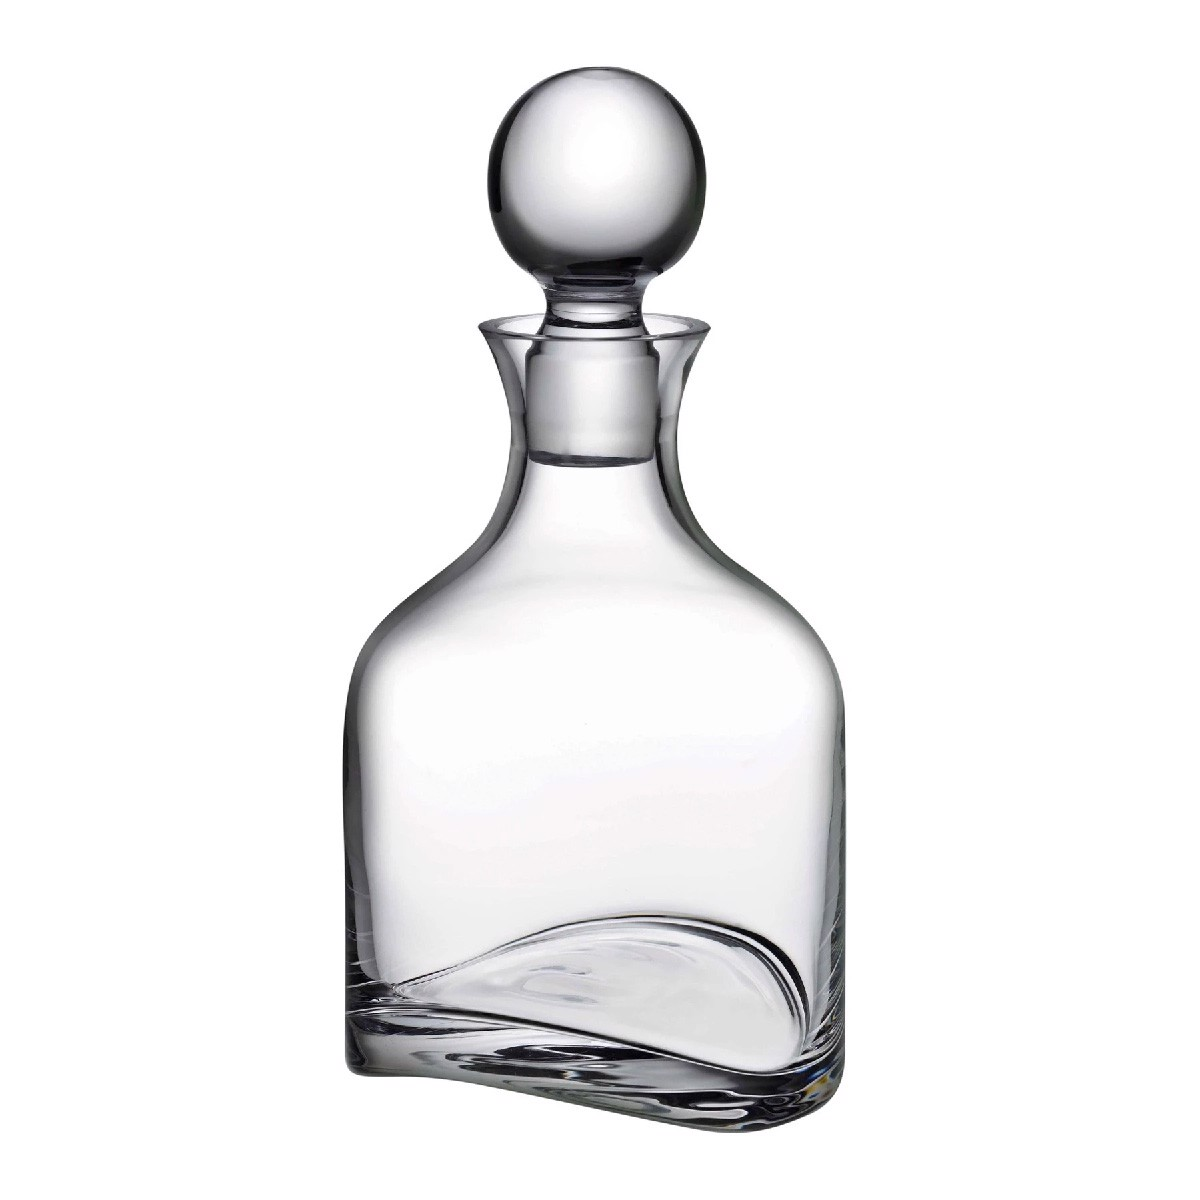 NUDE - Arch whiskey bottle